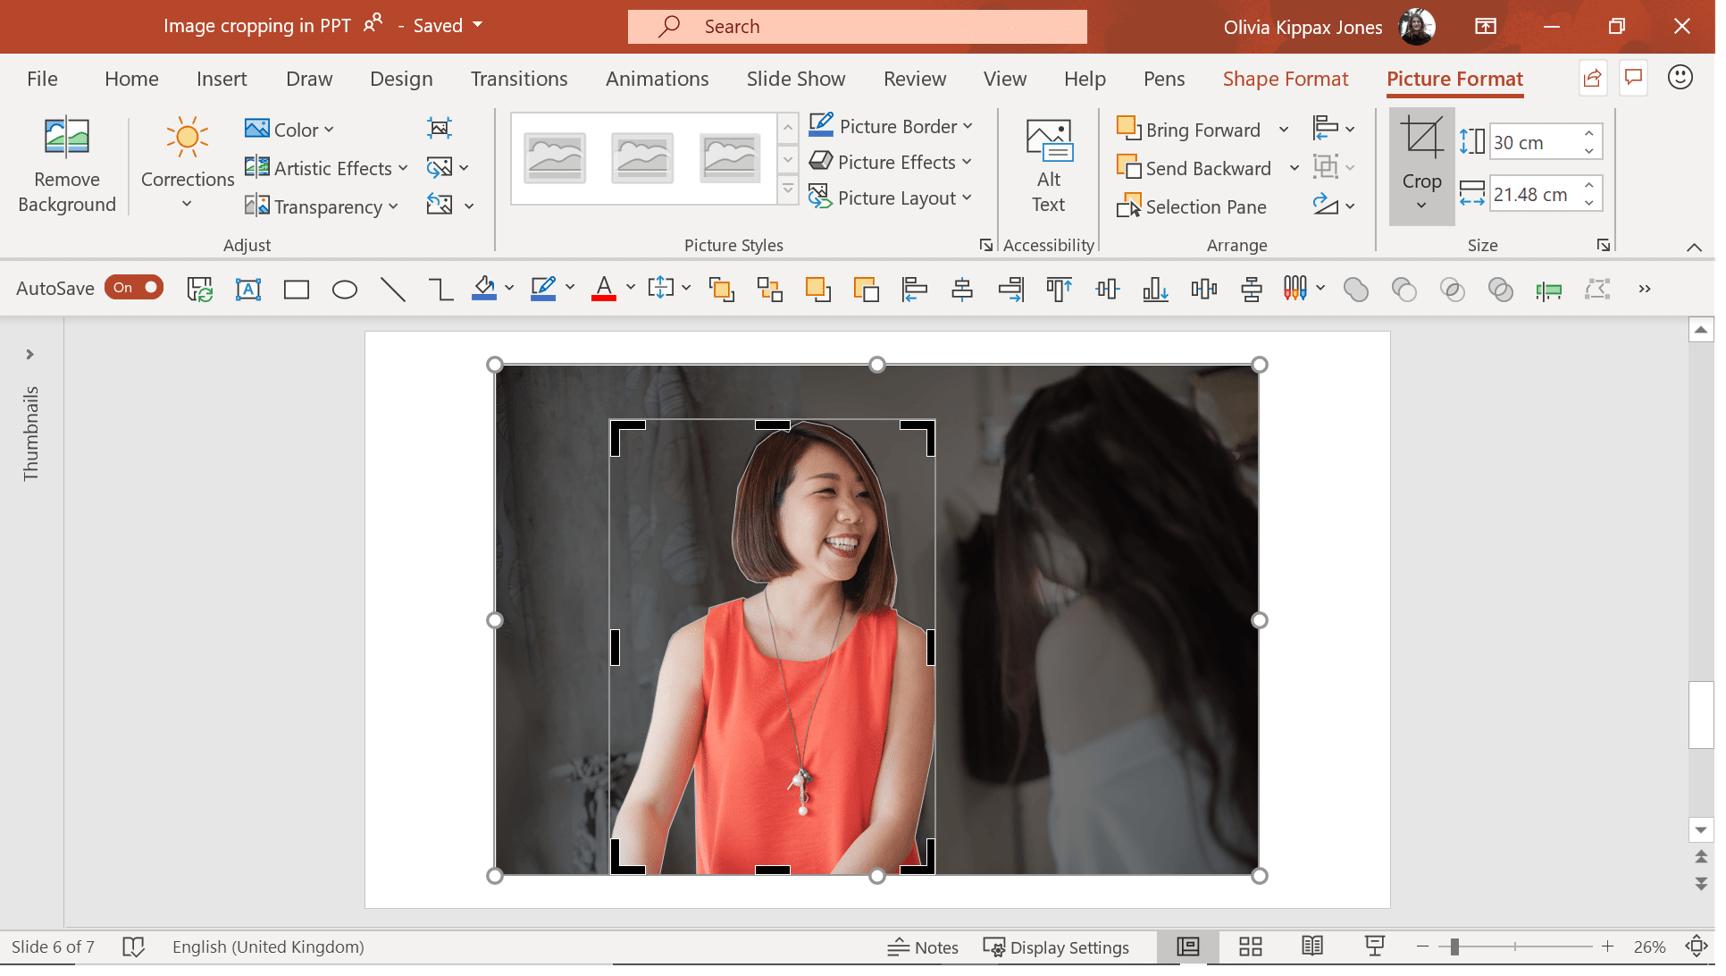 free form image crop  Custom image cropping in PowerPoint | BrightCarbon